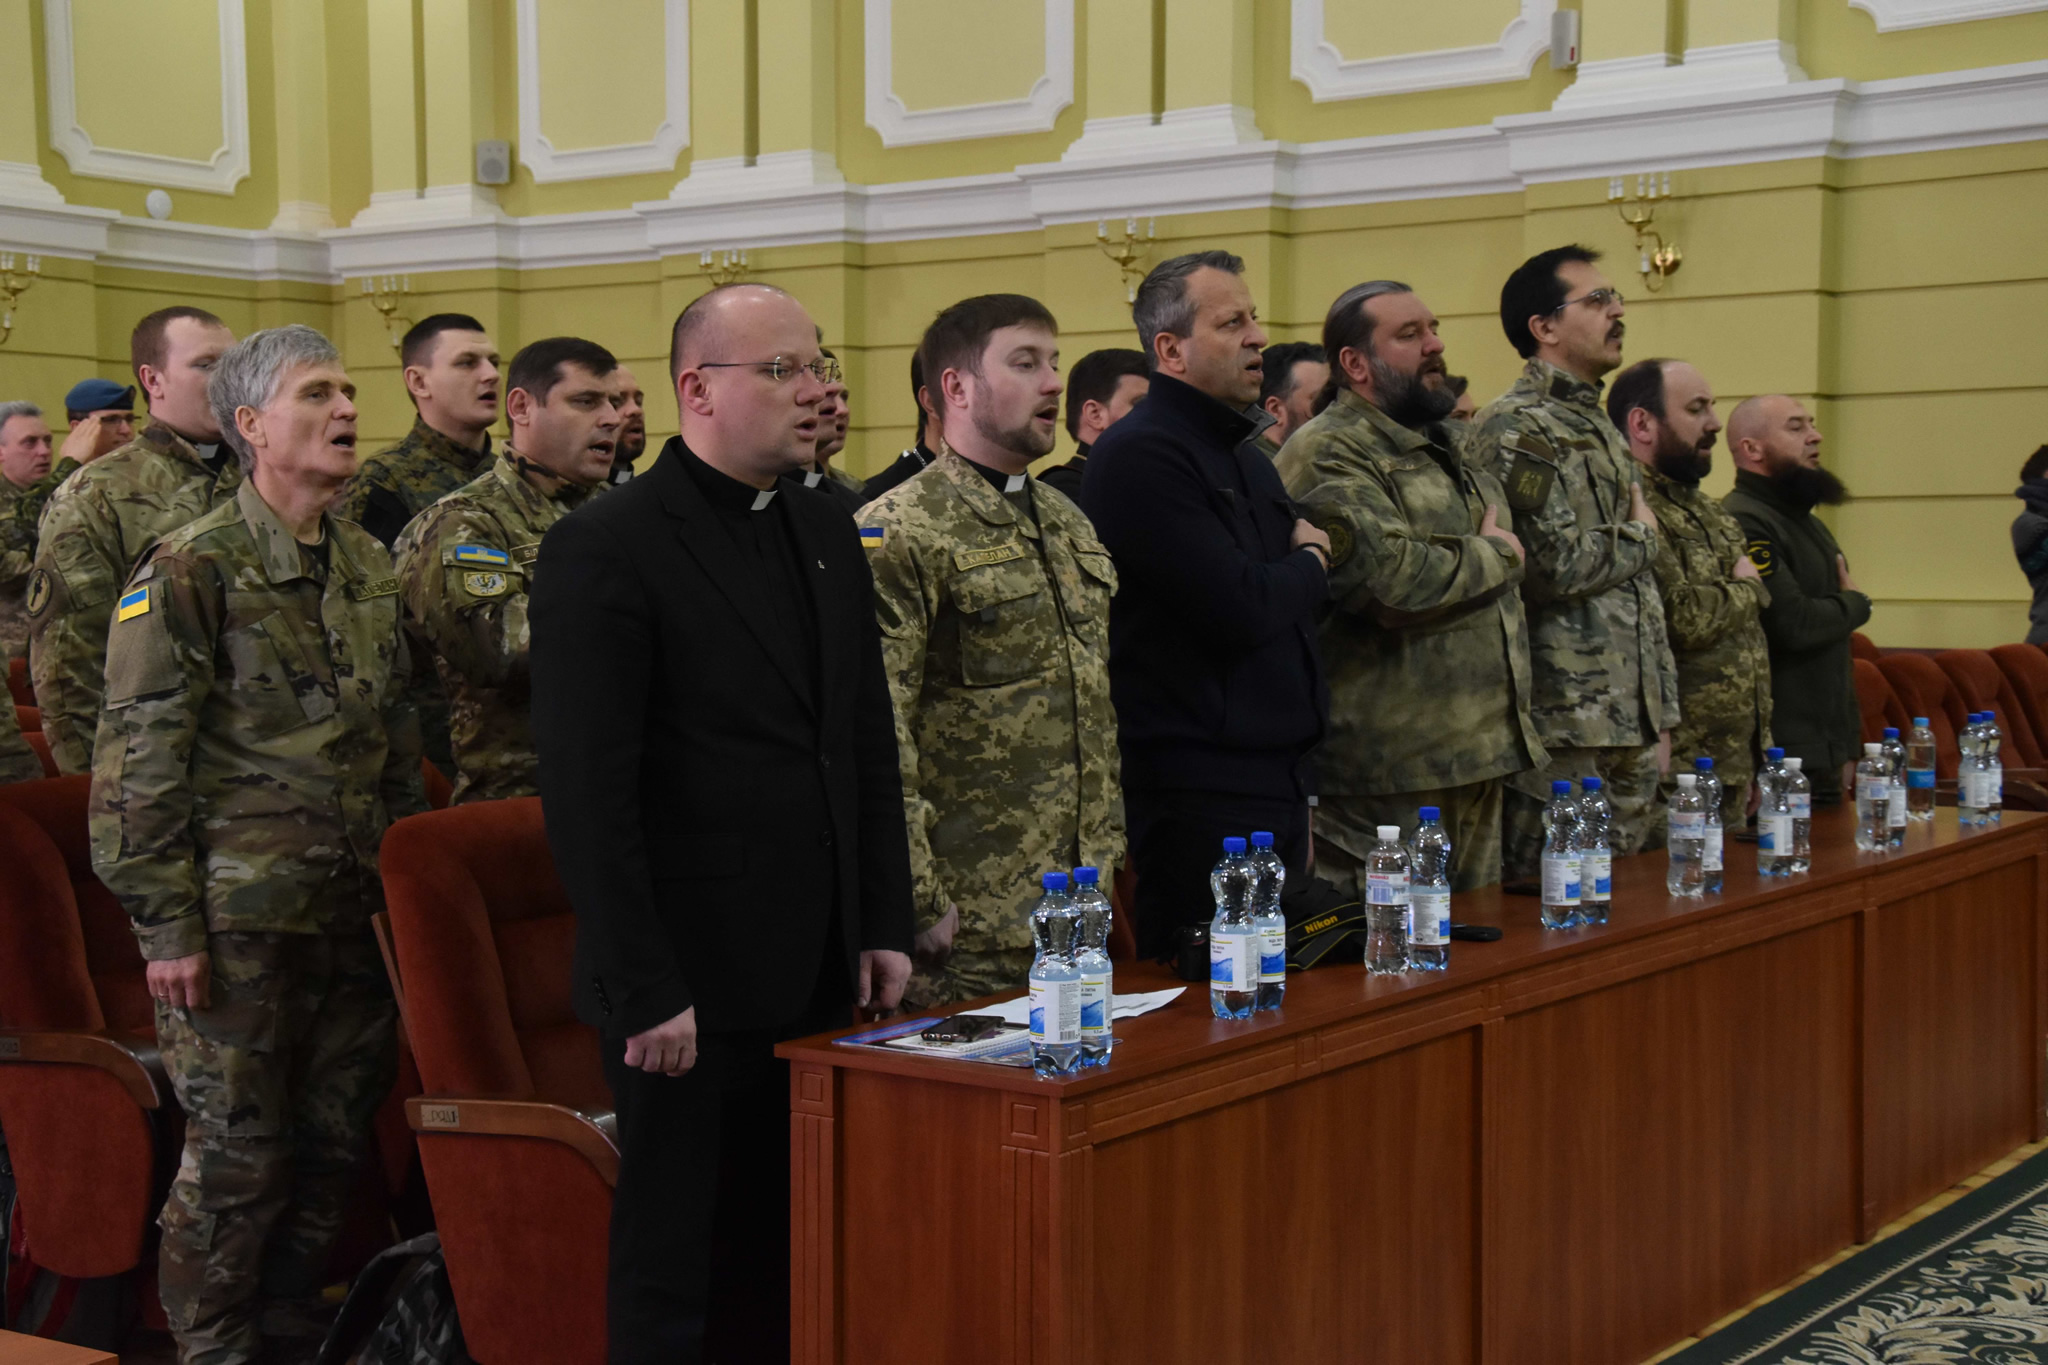 Lviv, Ukraine. February 10, 2017 – Ukrainian religious leaders taking part in the Joint Task Force - Ukraine chaplain development course sing the national anthem during a ceremony at the Hetman Petro Sahaidachny National Army Academy in Lviv, Ukraine, on February 10, 2017. (Photo : Joint Task Force – Ukraine)